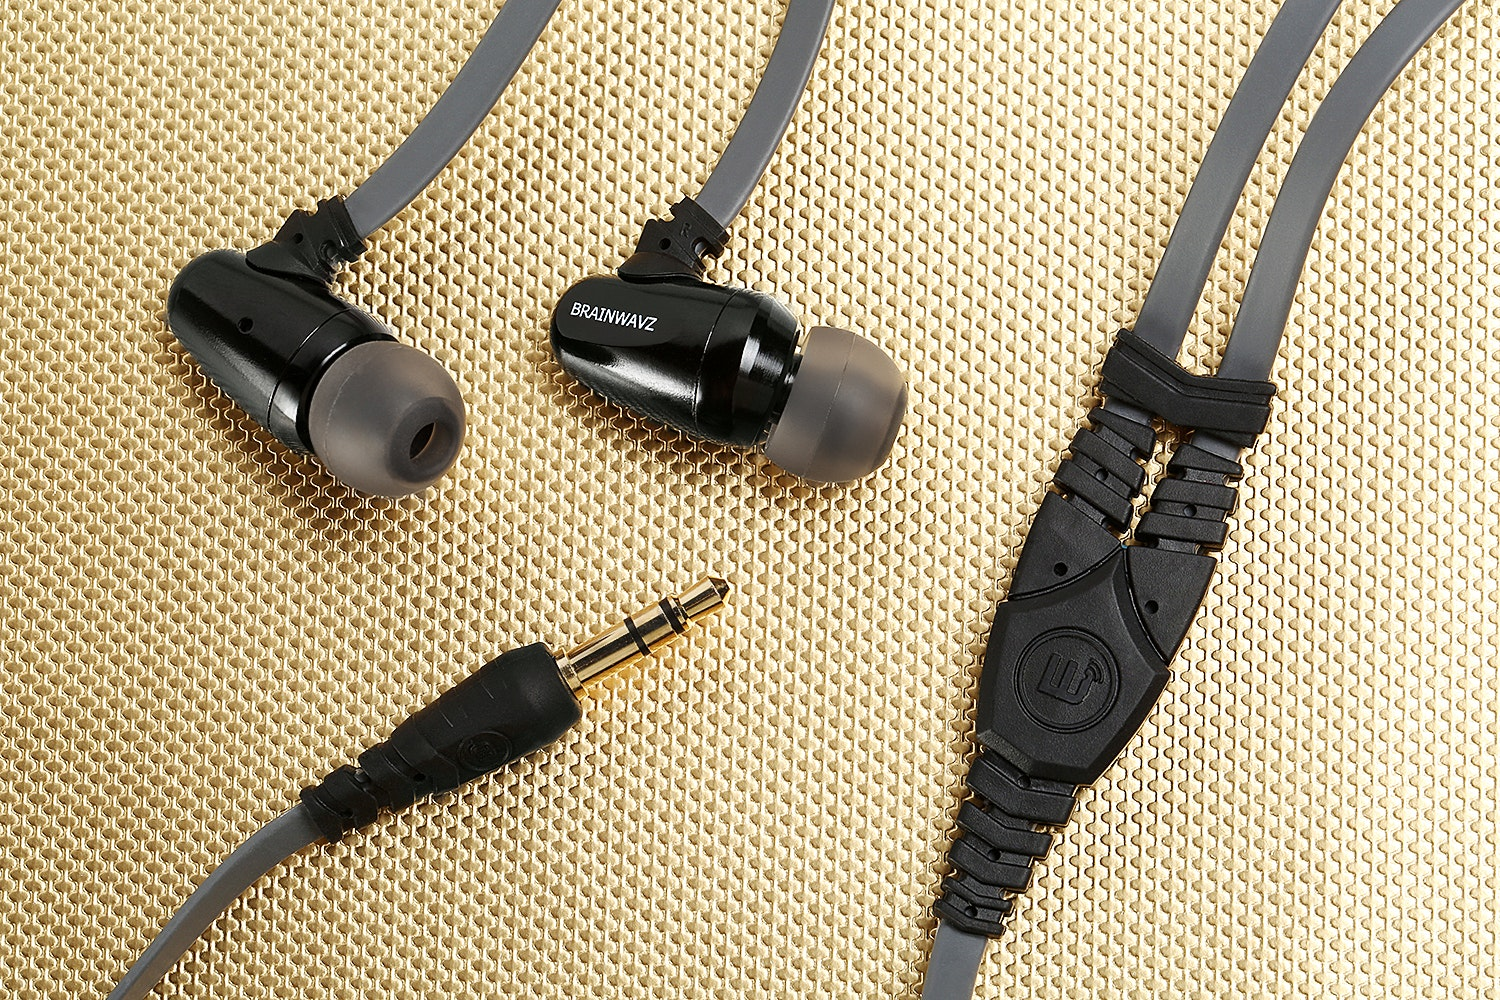 Brainwavz S5 Earphones